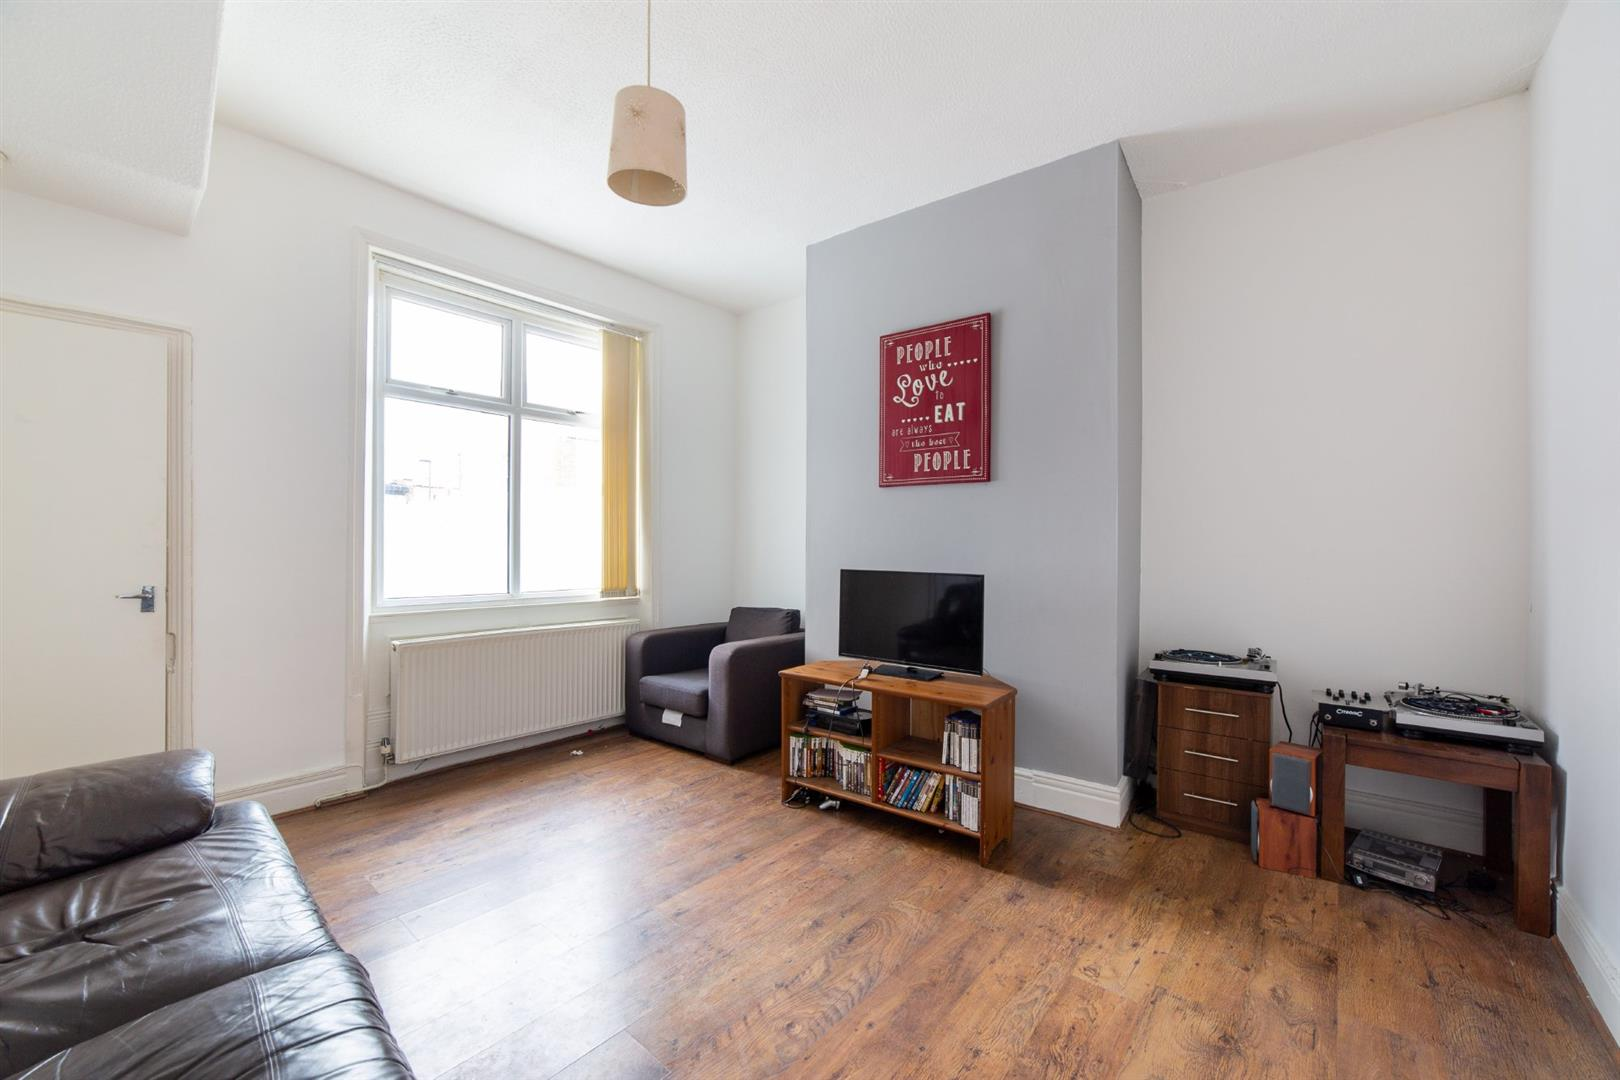 4 bed terraced house to rent in Newcastle Upon Tyne, NE6 5SE, NE6